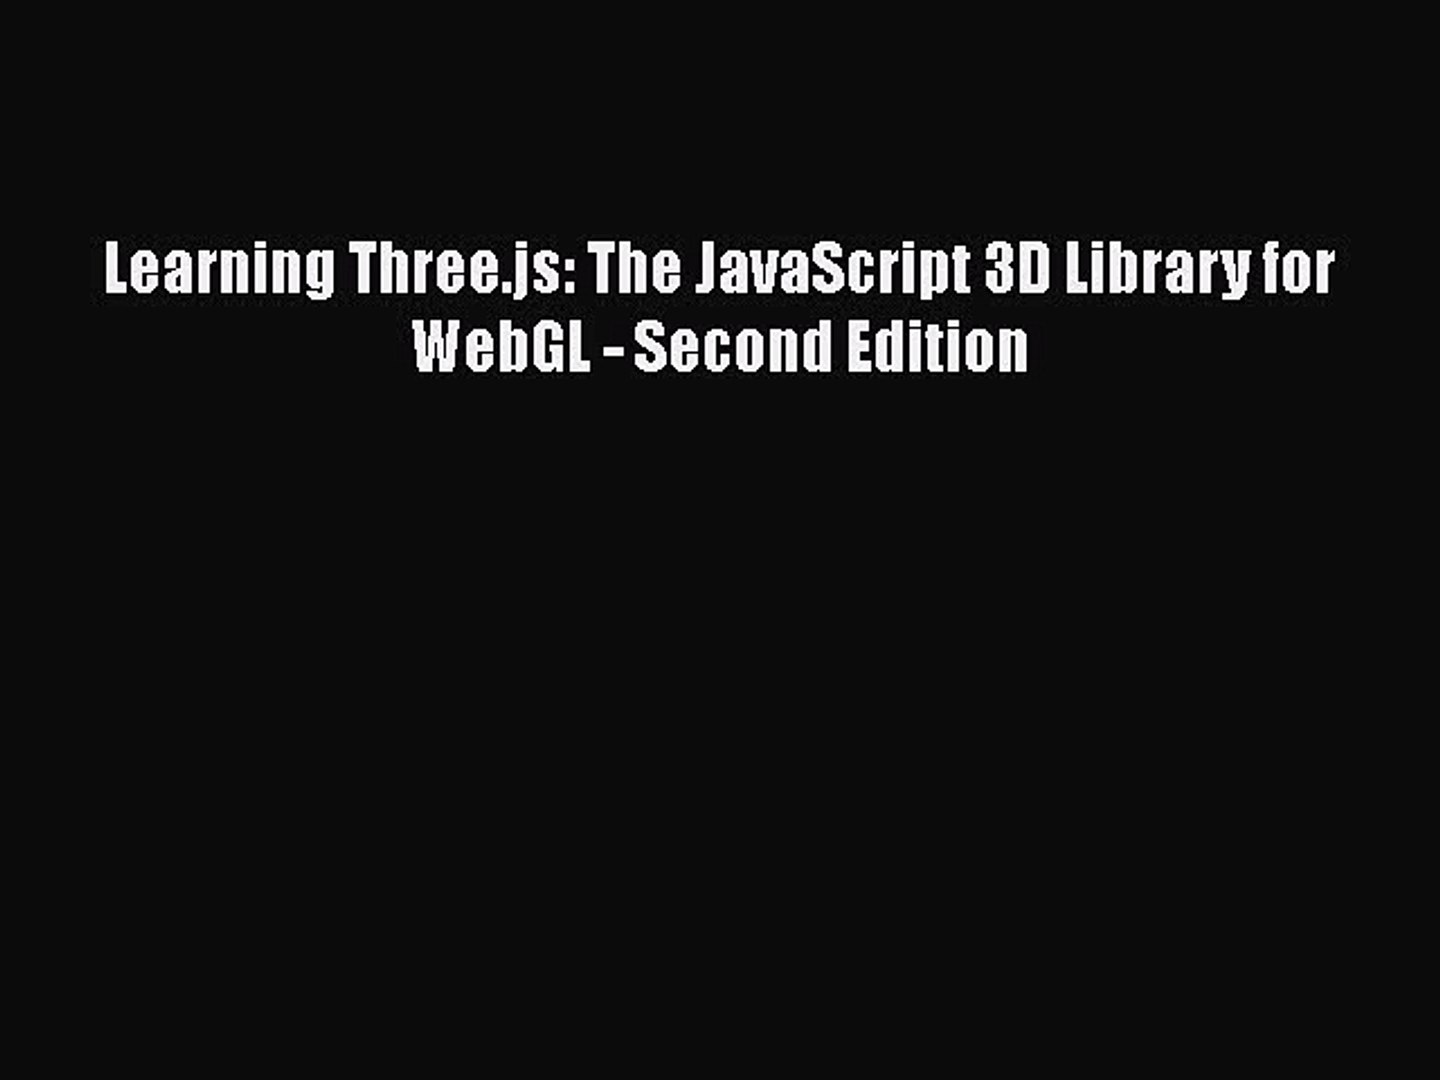 Download Learning Three js: The JavaScript 3D Library for